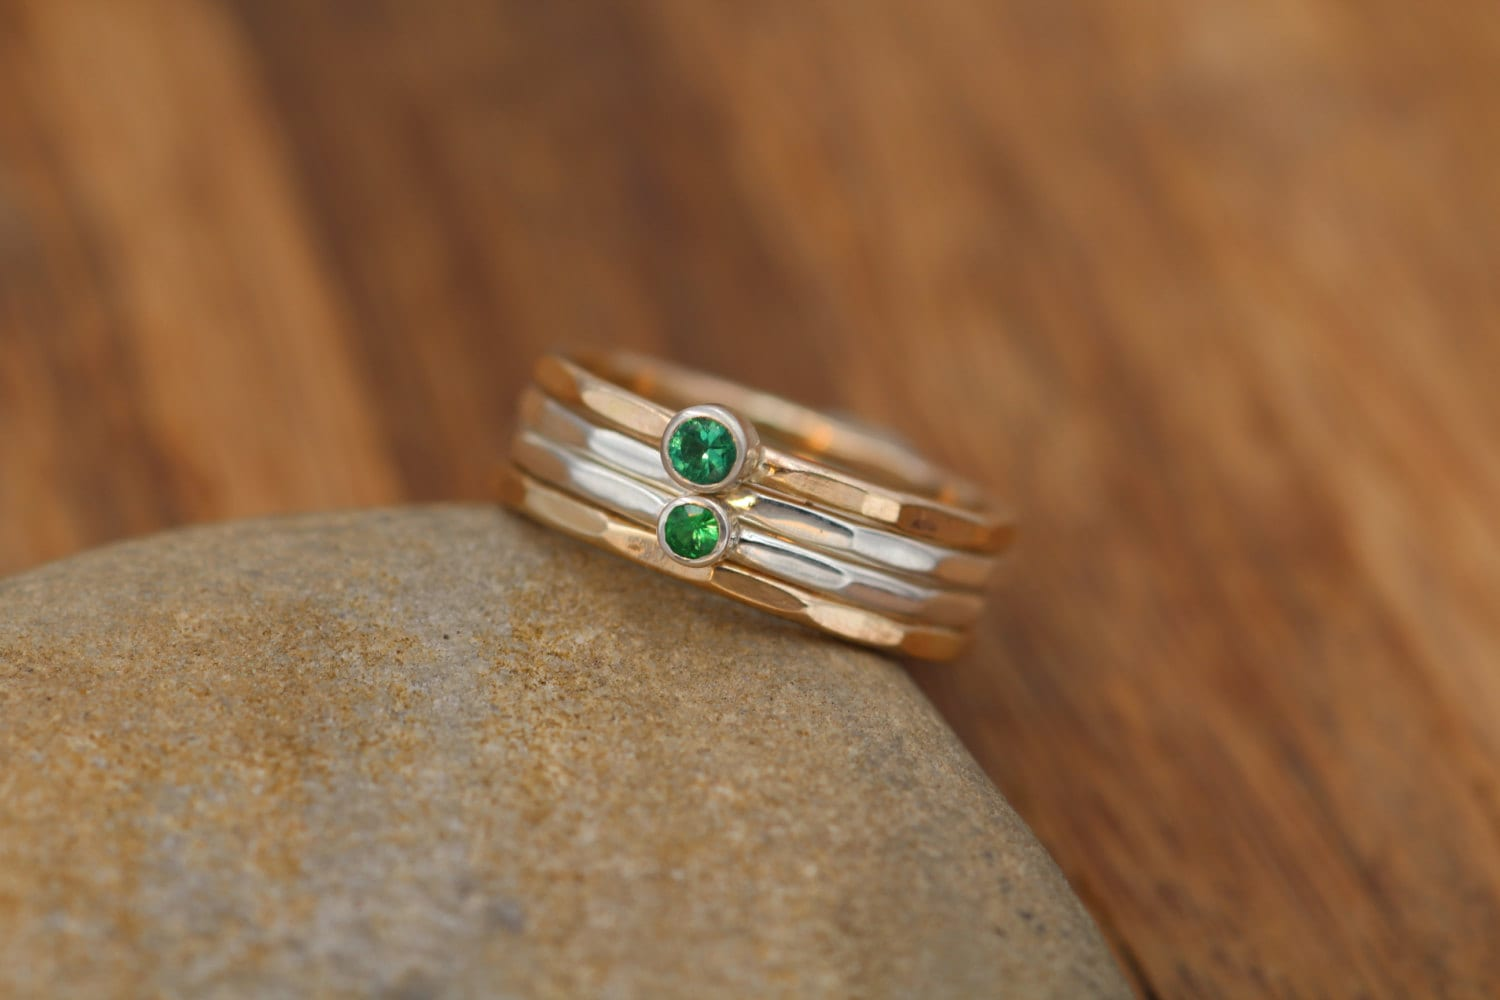 tsavorite garnet design product with gold ring rings rose metamorphosis jewelry